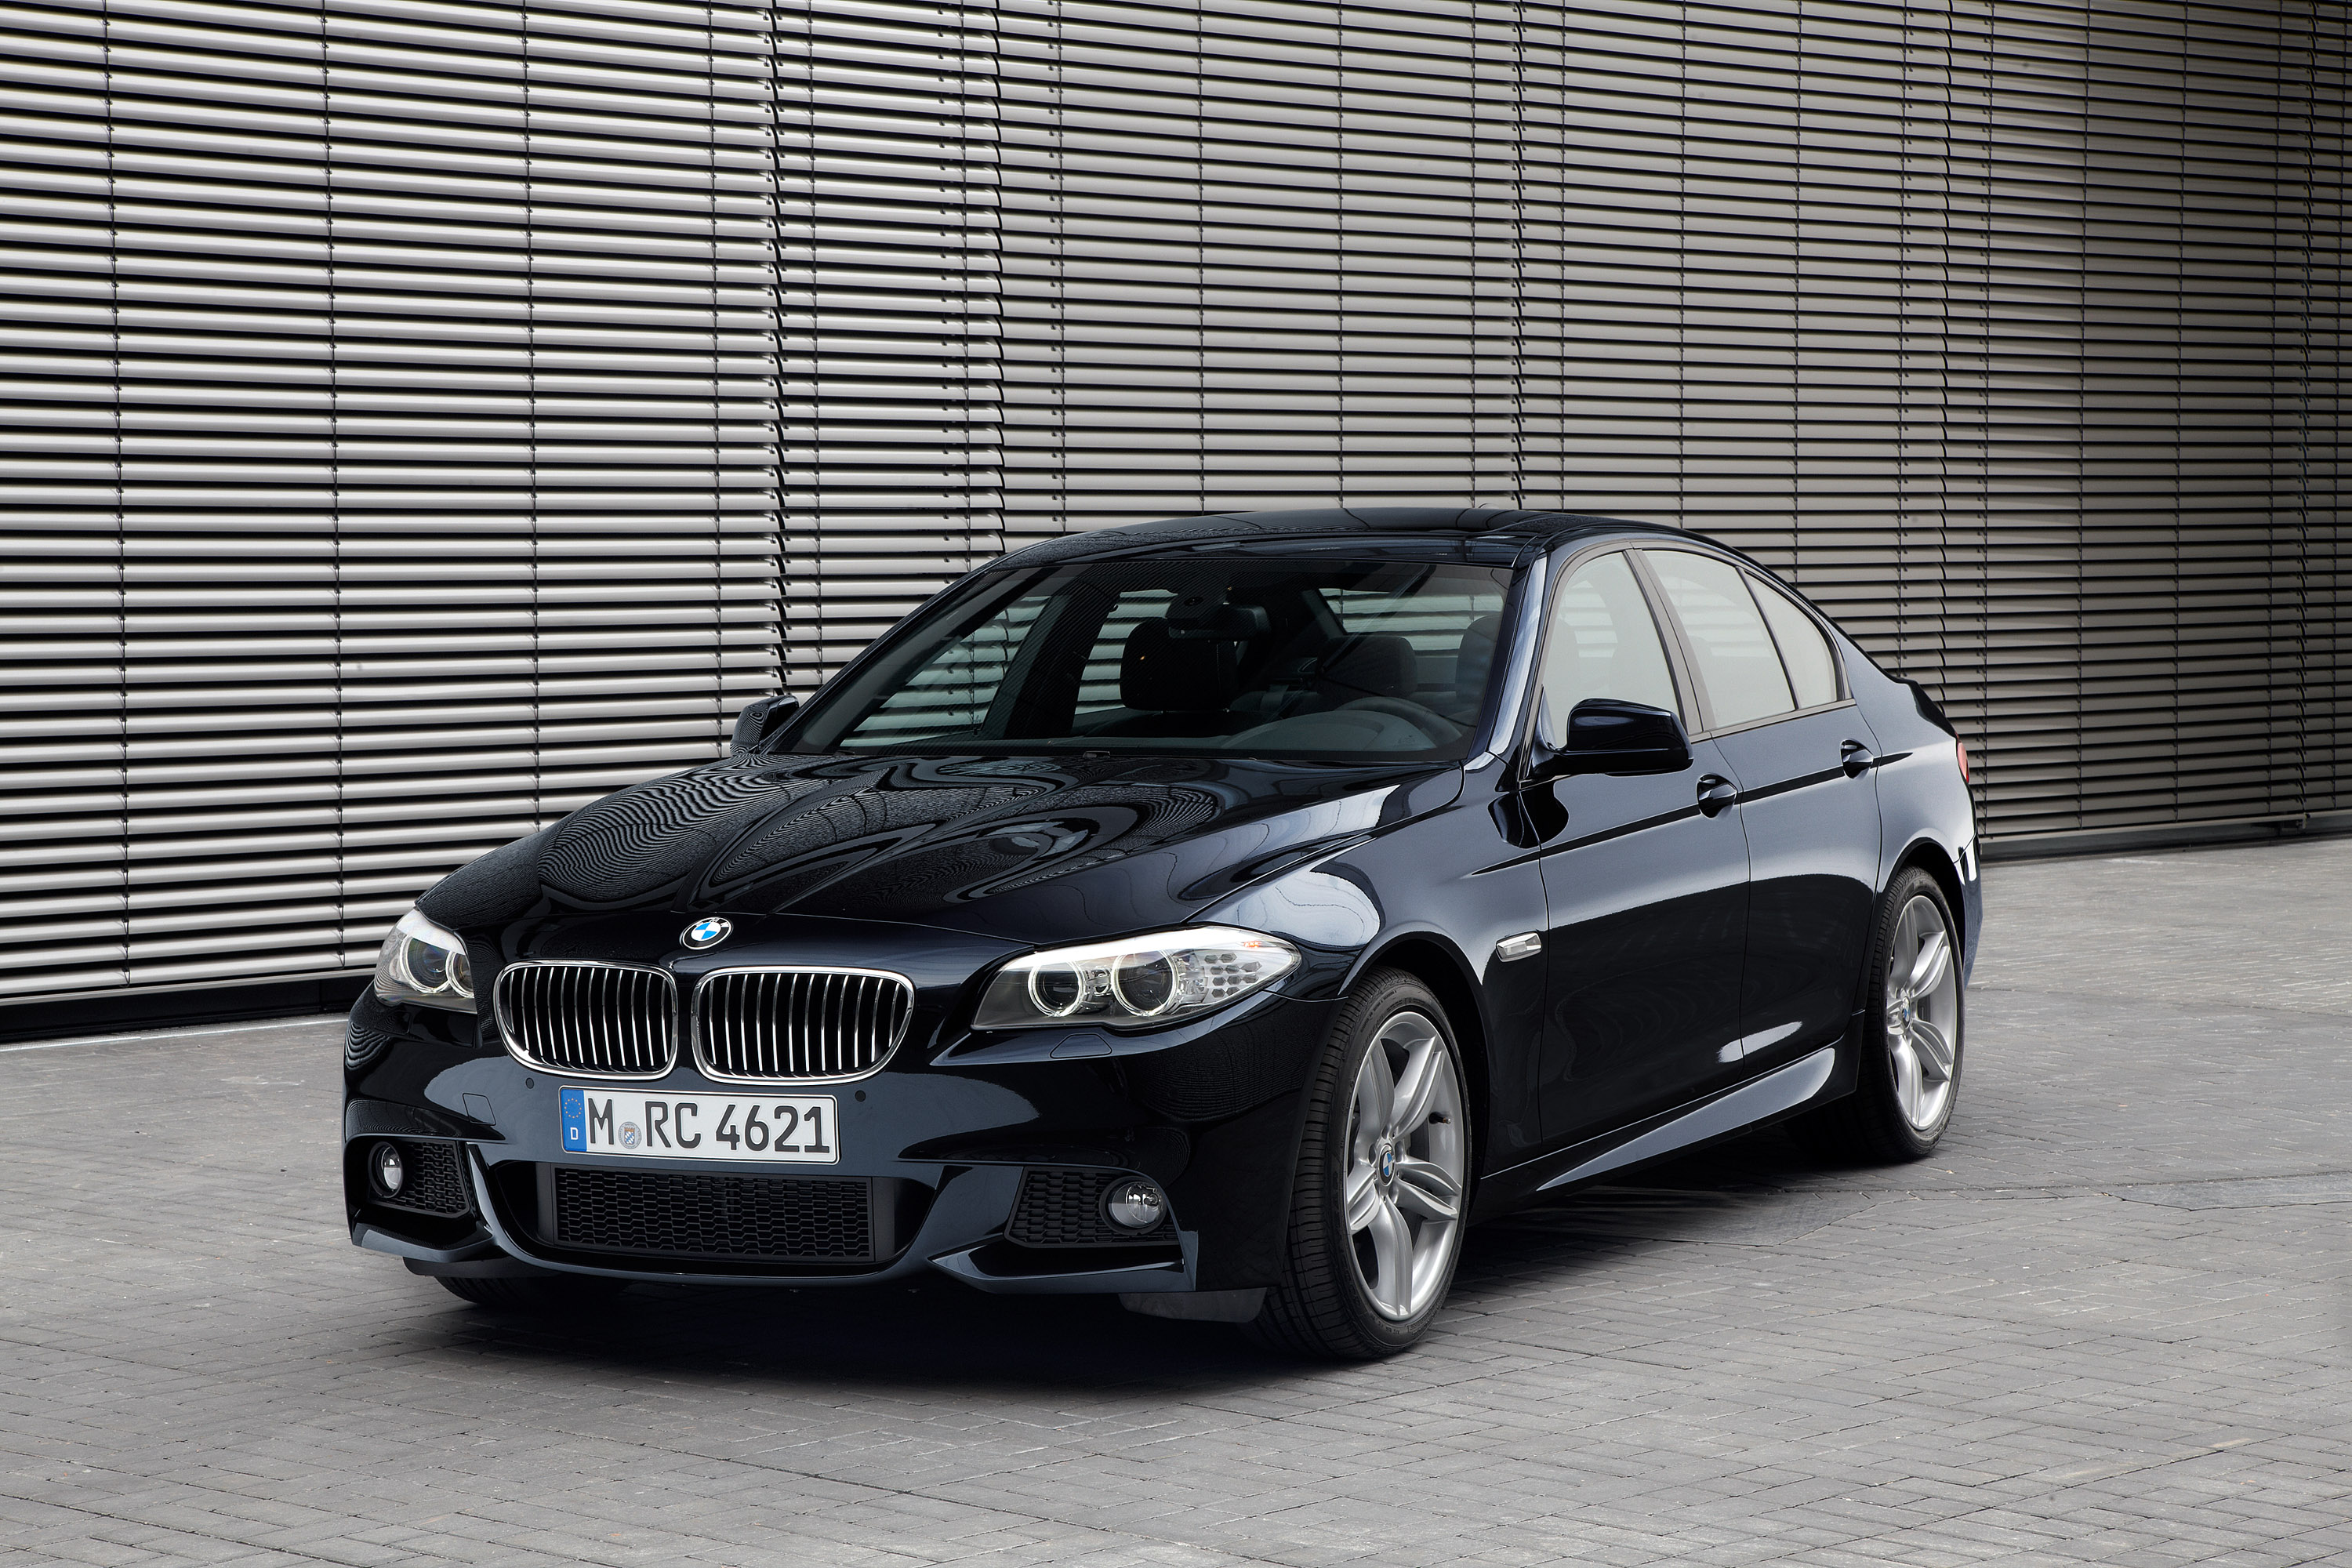 Bmw F10 535d M Sport Review Video